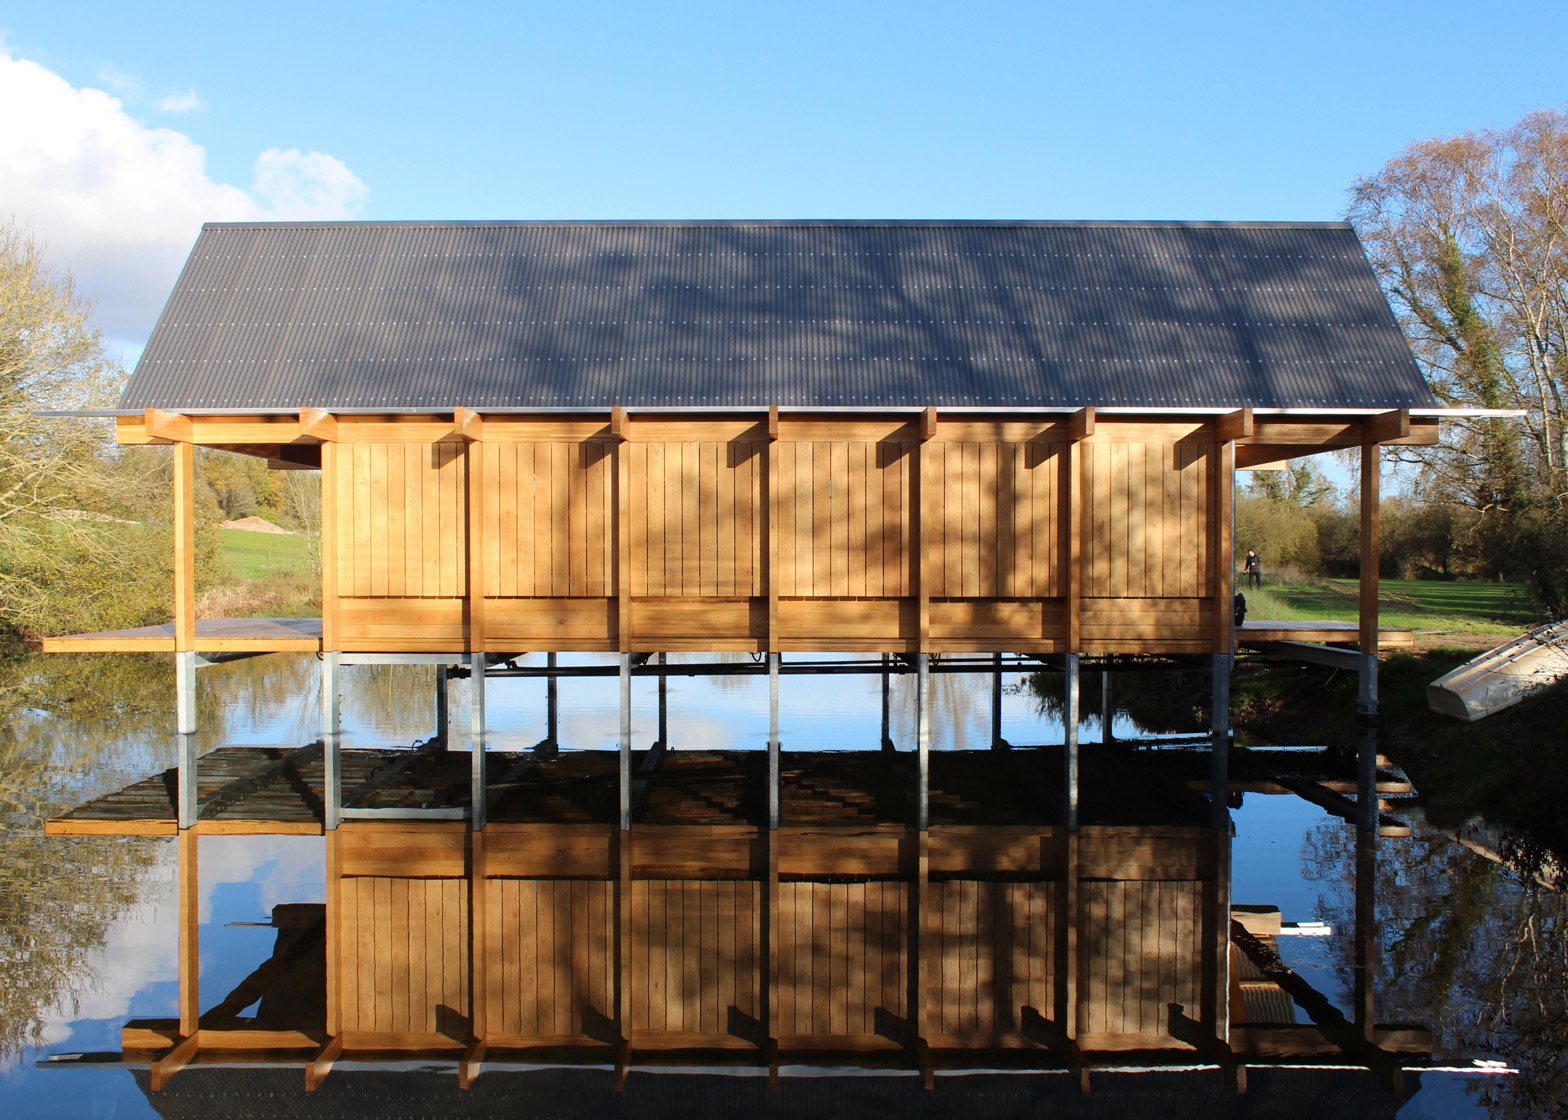 The Fishing Hut by Niall McLaughlin Architects,  Arnold Laver Gold Award & Private Winner 2015